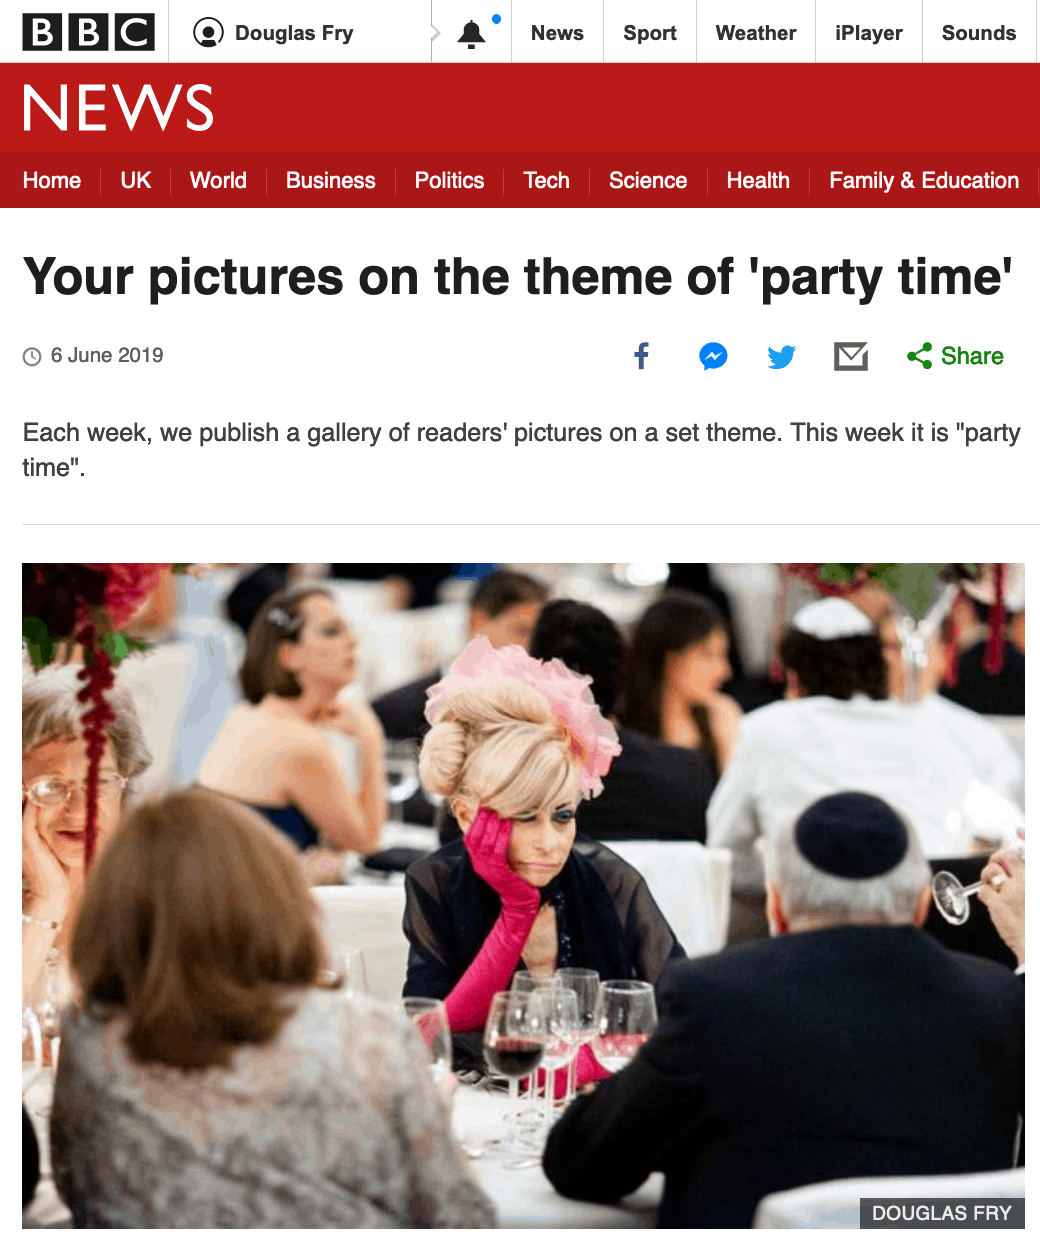 Photograph on BBC News Website taken by Douglas Fry at London Wedding